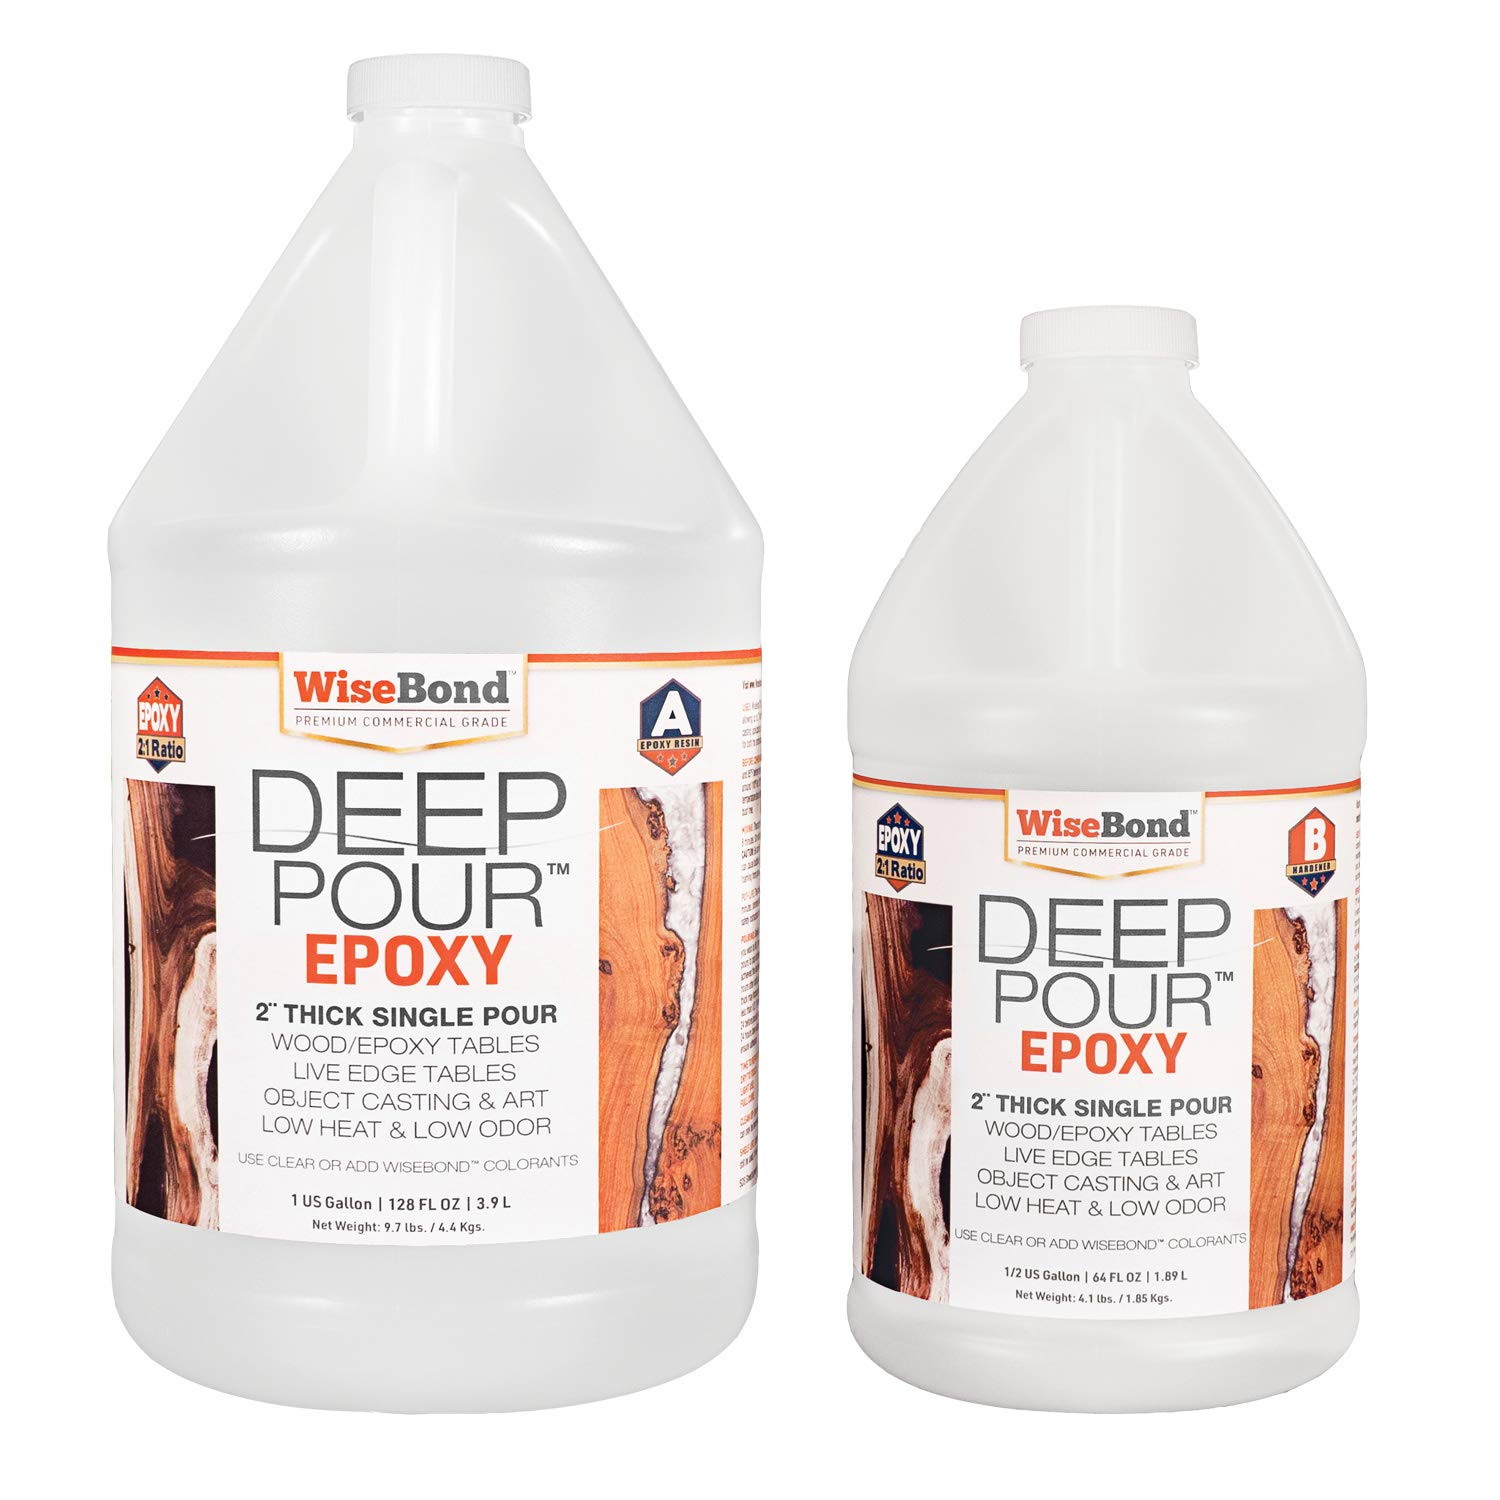 """WiseBond DEEP Pour 2"""" Thick Single Pour Epoxy Resin for River Tables, Live Edge Slabs, Lathe Turning, Molds and Art Casting, 2 Part 1-1/2 Gallon 2:1 Ratio Kit, Pour Crystal Clear or Easily Tint"""